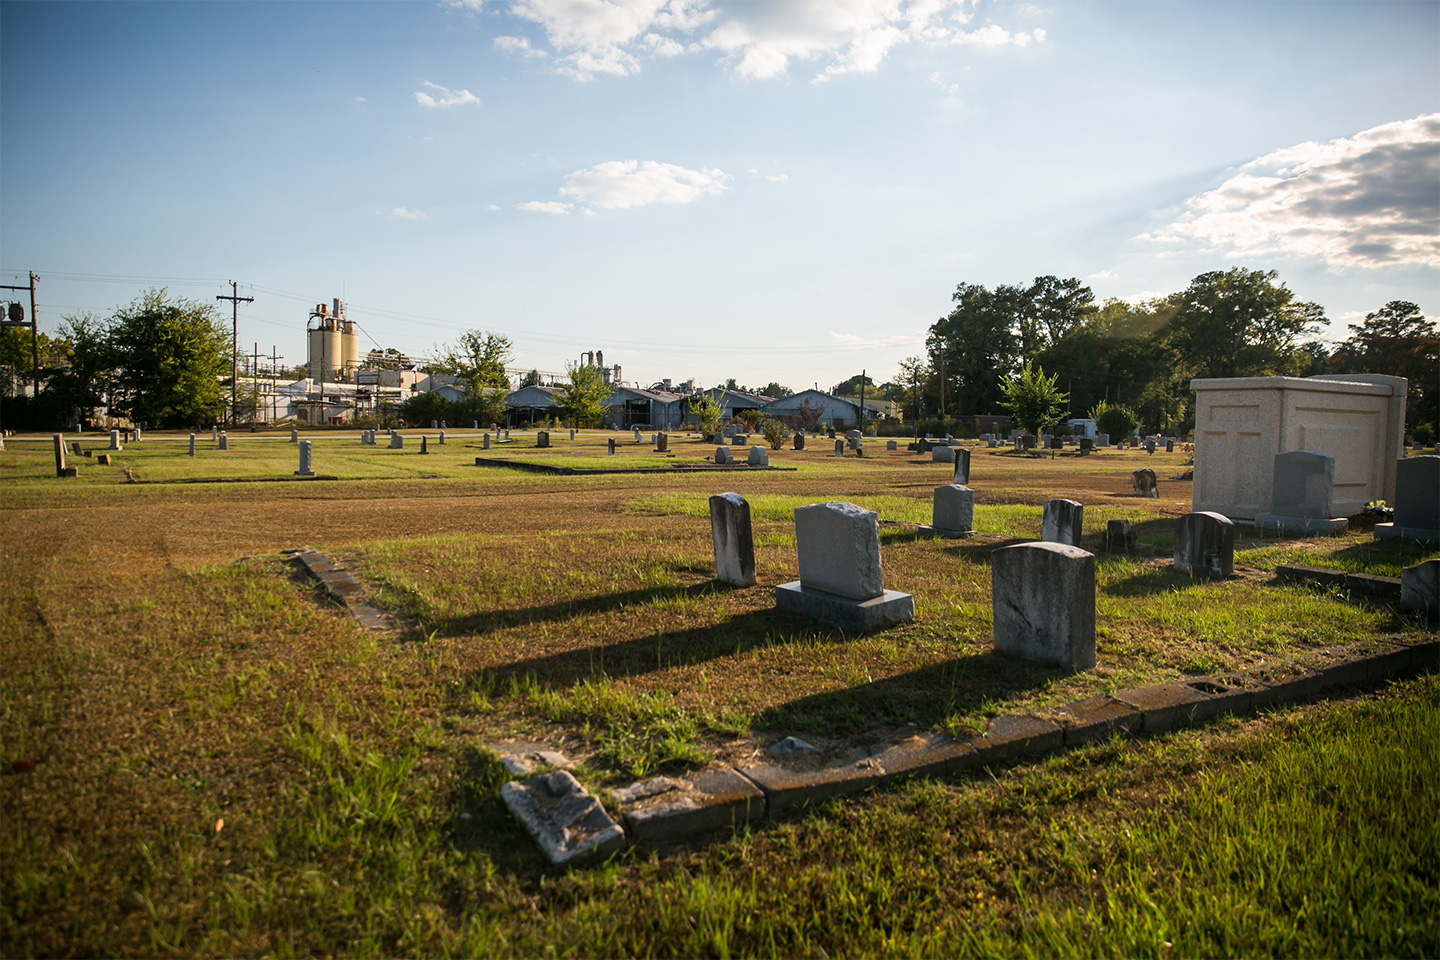 Union Cemetery lines the old Kerr McGee site between the now closed Sanderson Plumbing Products factory in Columbus, Mississippi. The graveyard is located between the two properties, surrounded by metal fencing on each side.